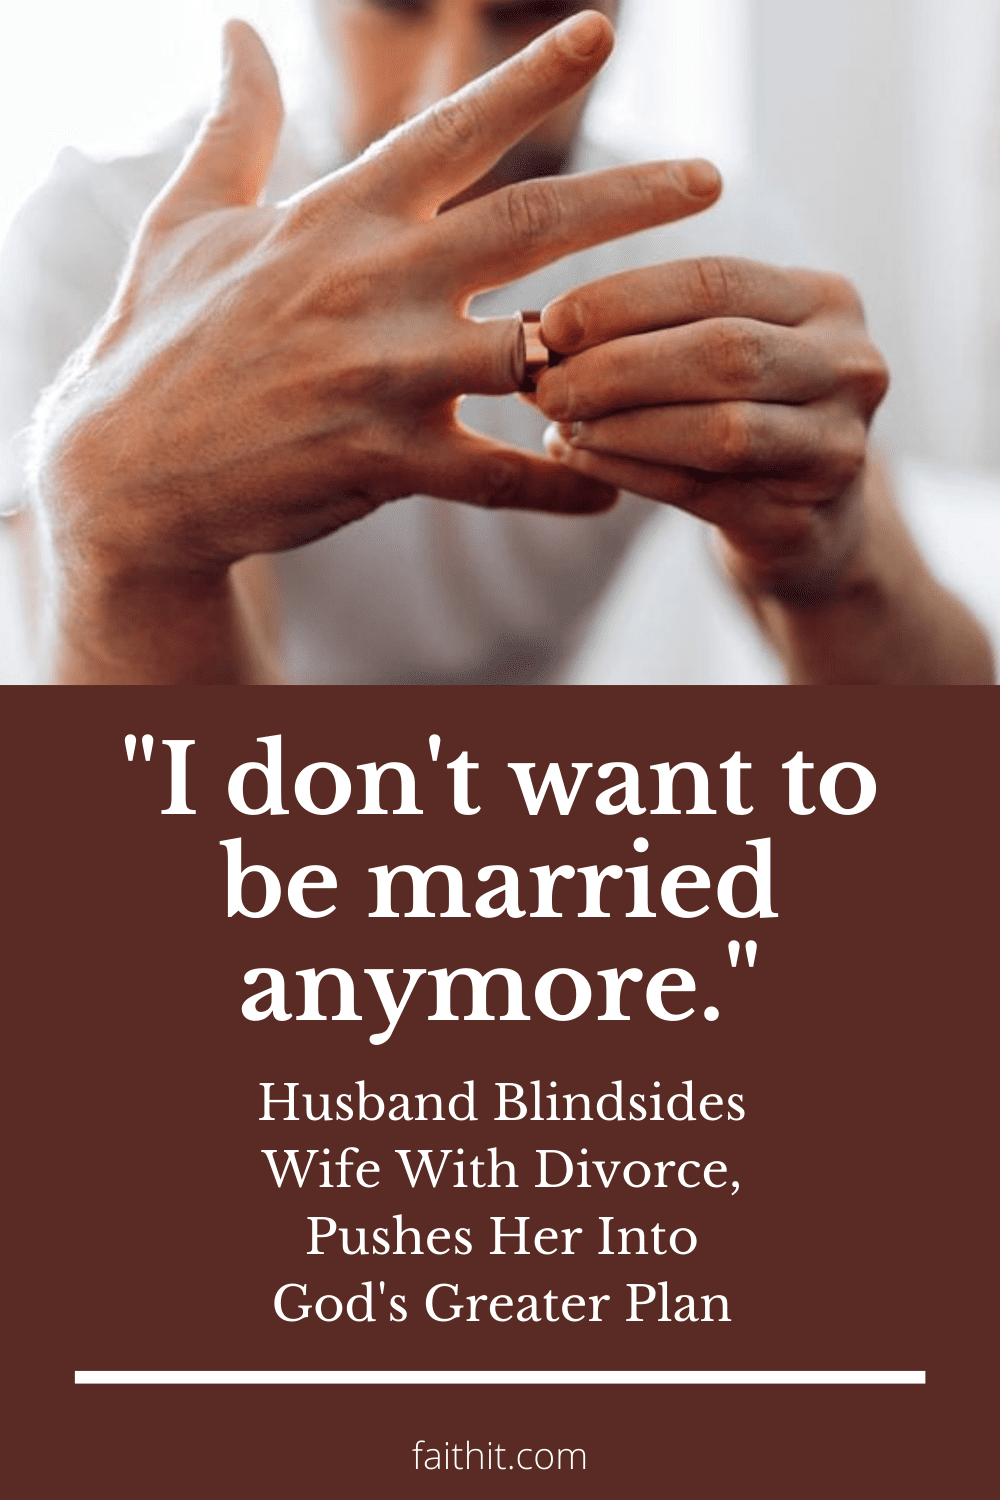 i don't want to be married anymore